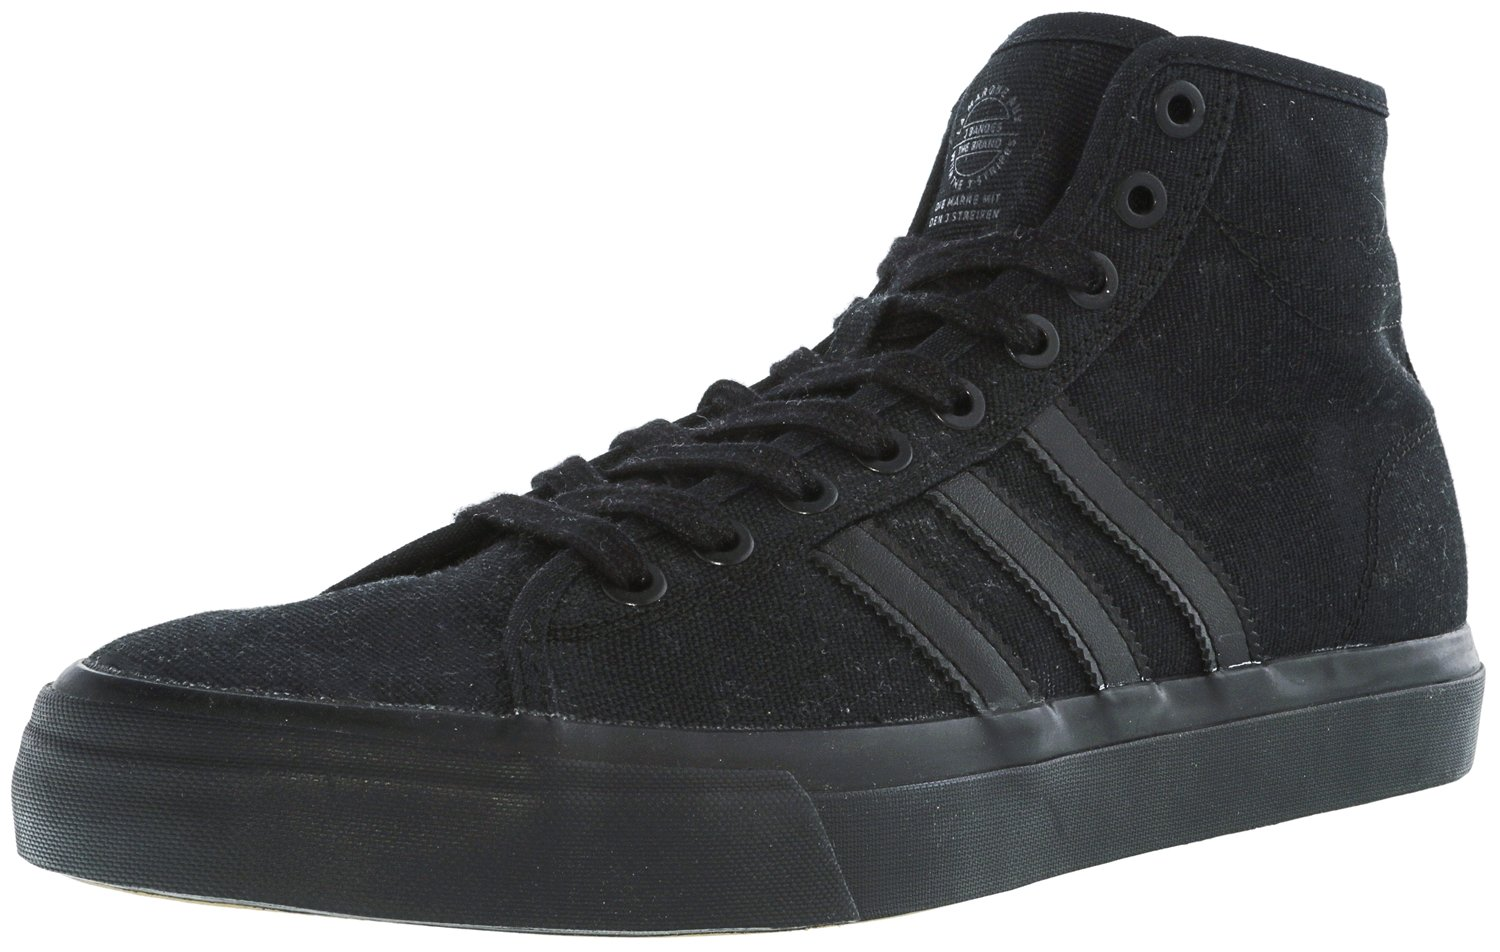 adidas Originals Men's Matchcourt High RX Shoes, Black/Black/Black, (9 M US)